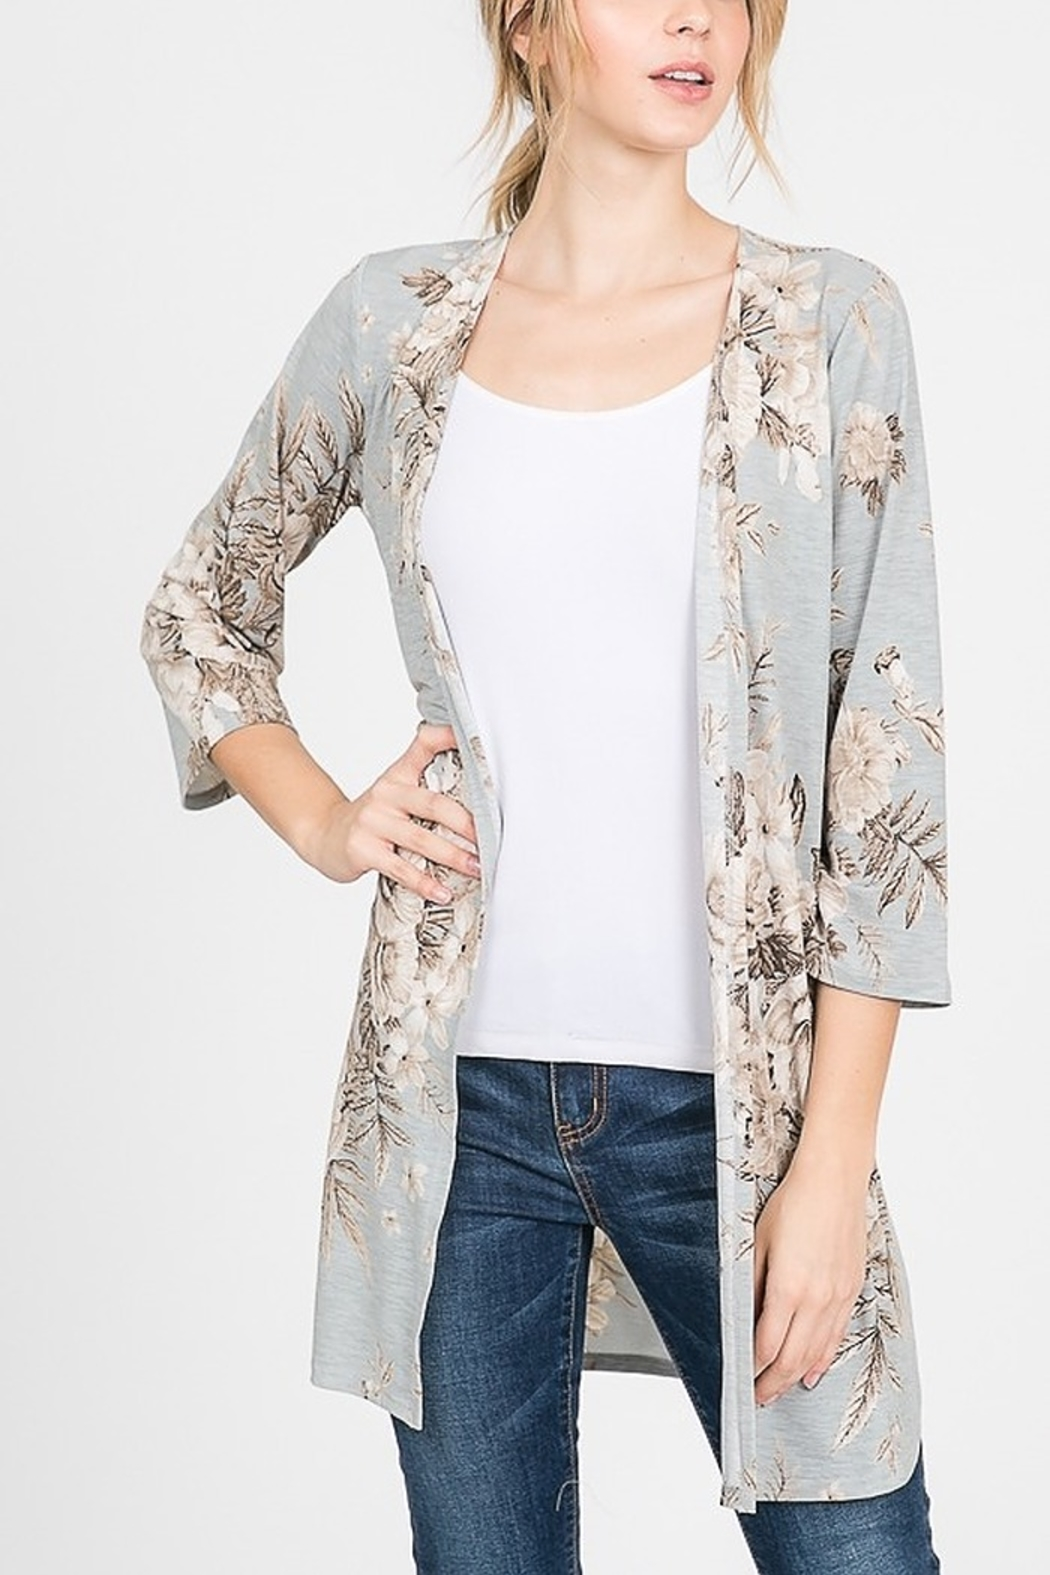 Lyn -Maree's Floral Cardi with Side Slit - Main Image